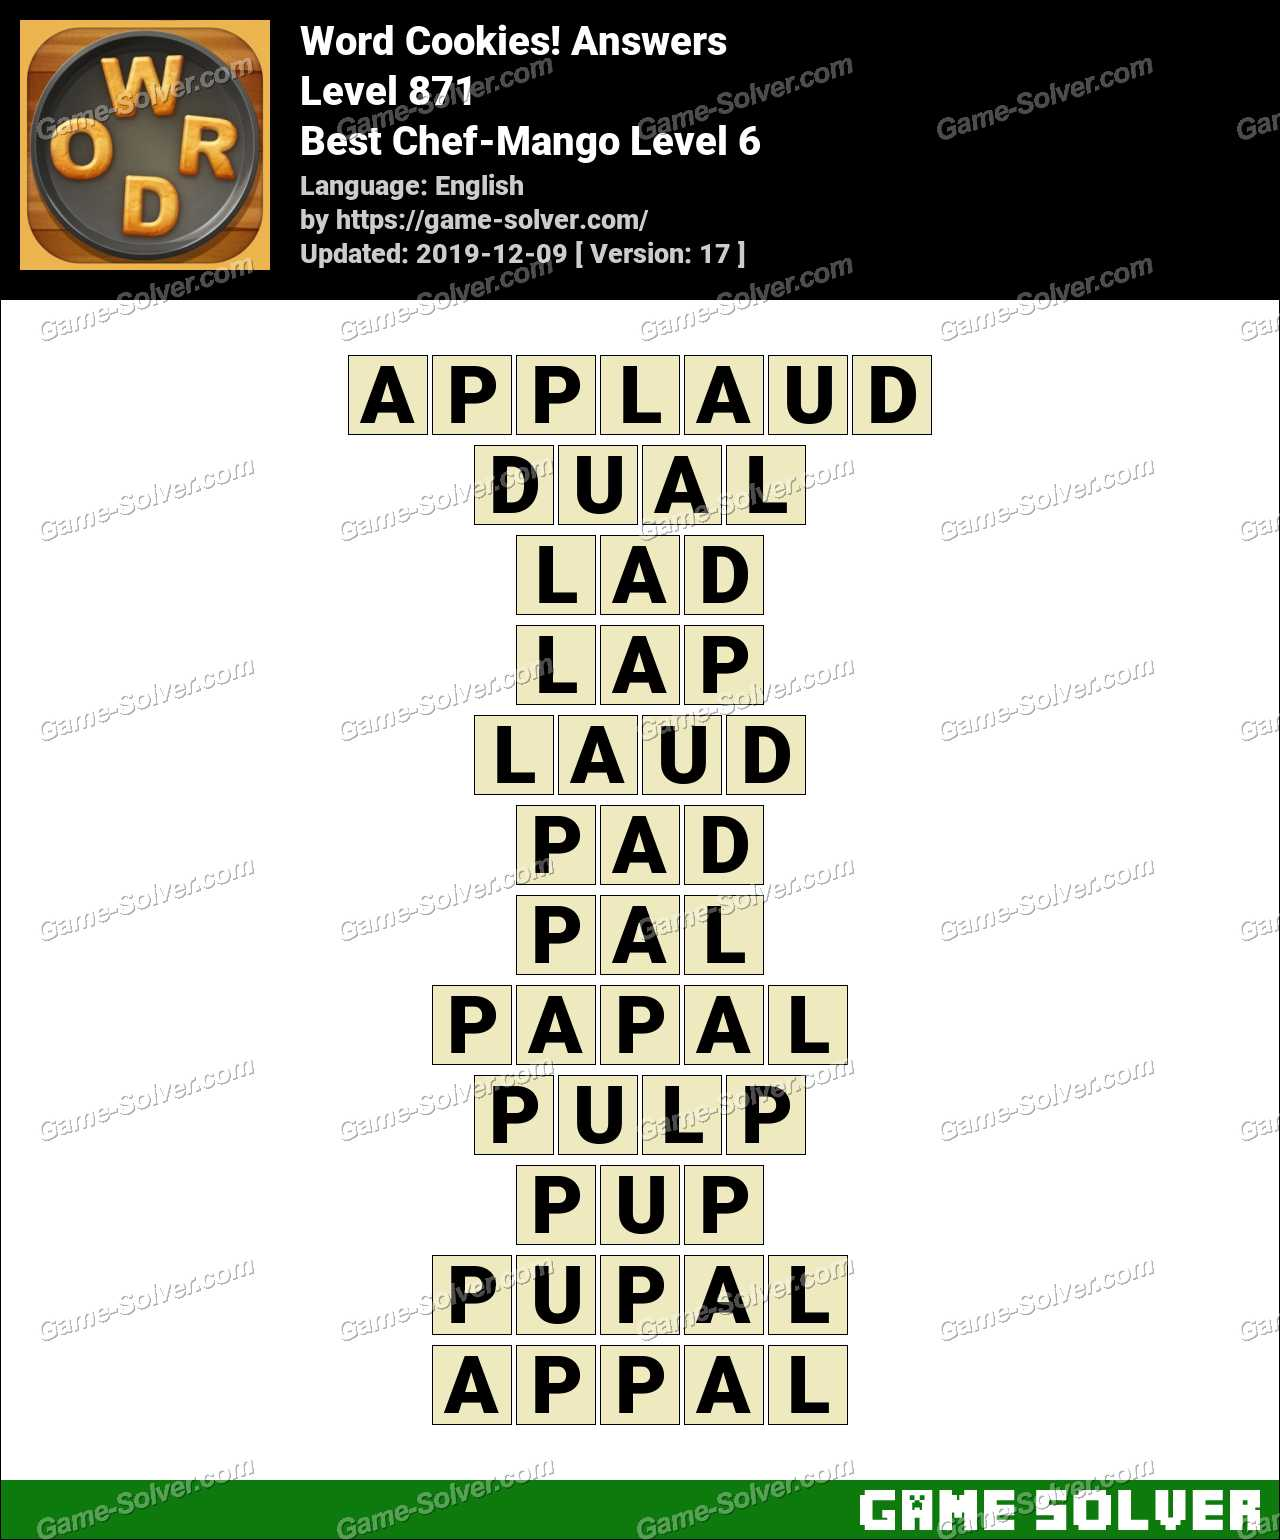 Word Cookies Best Chef-Mango Level 6 Answers